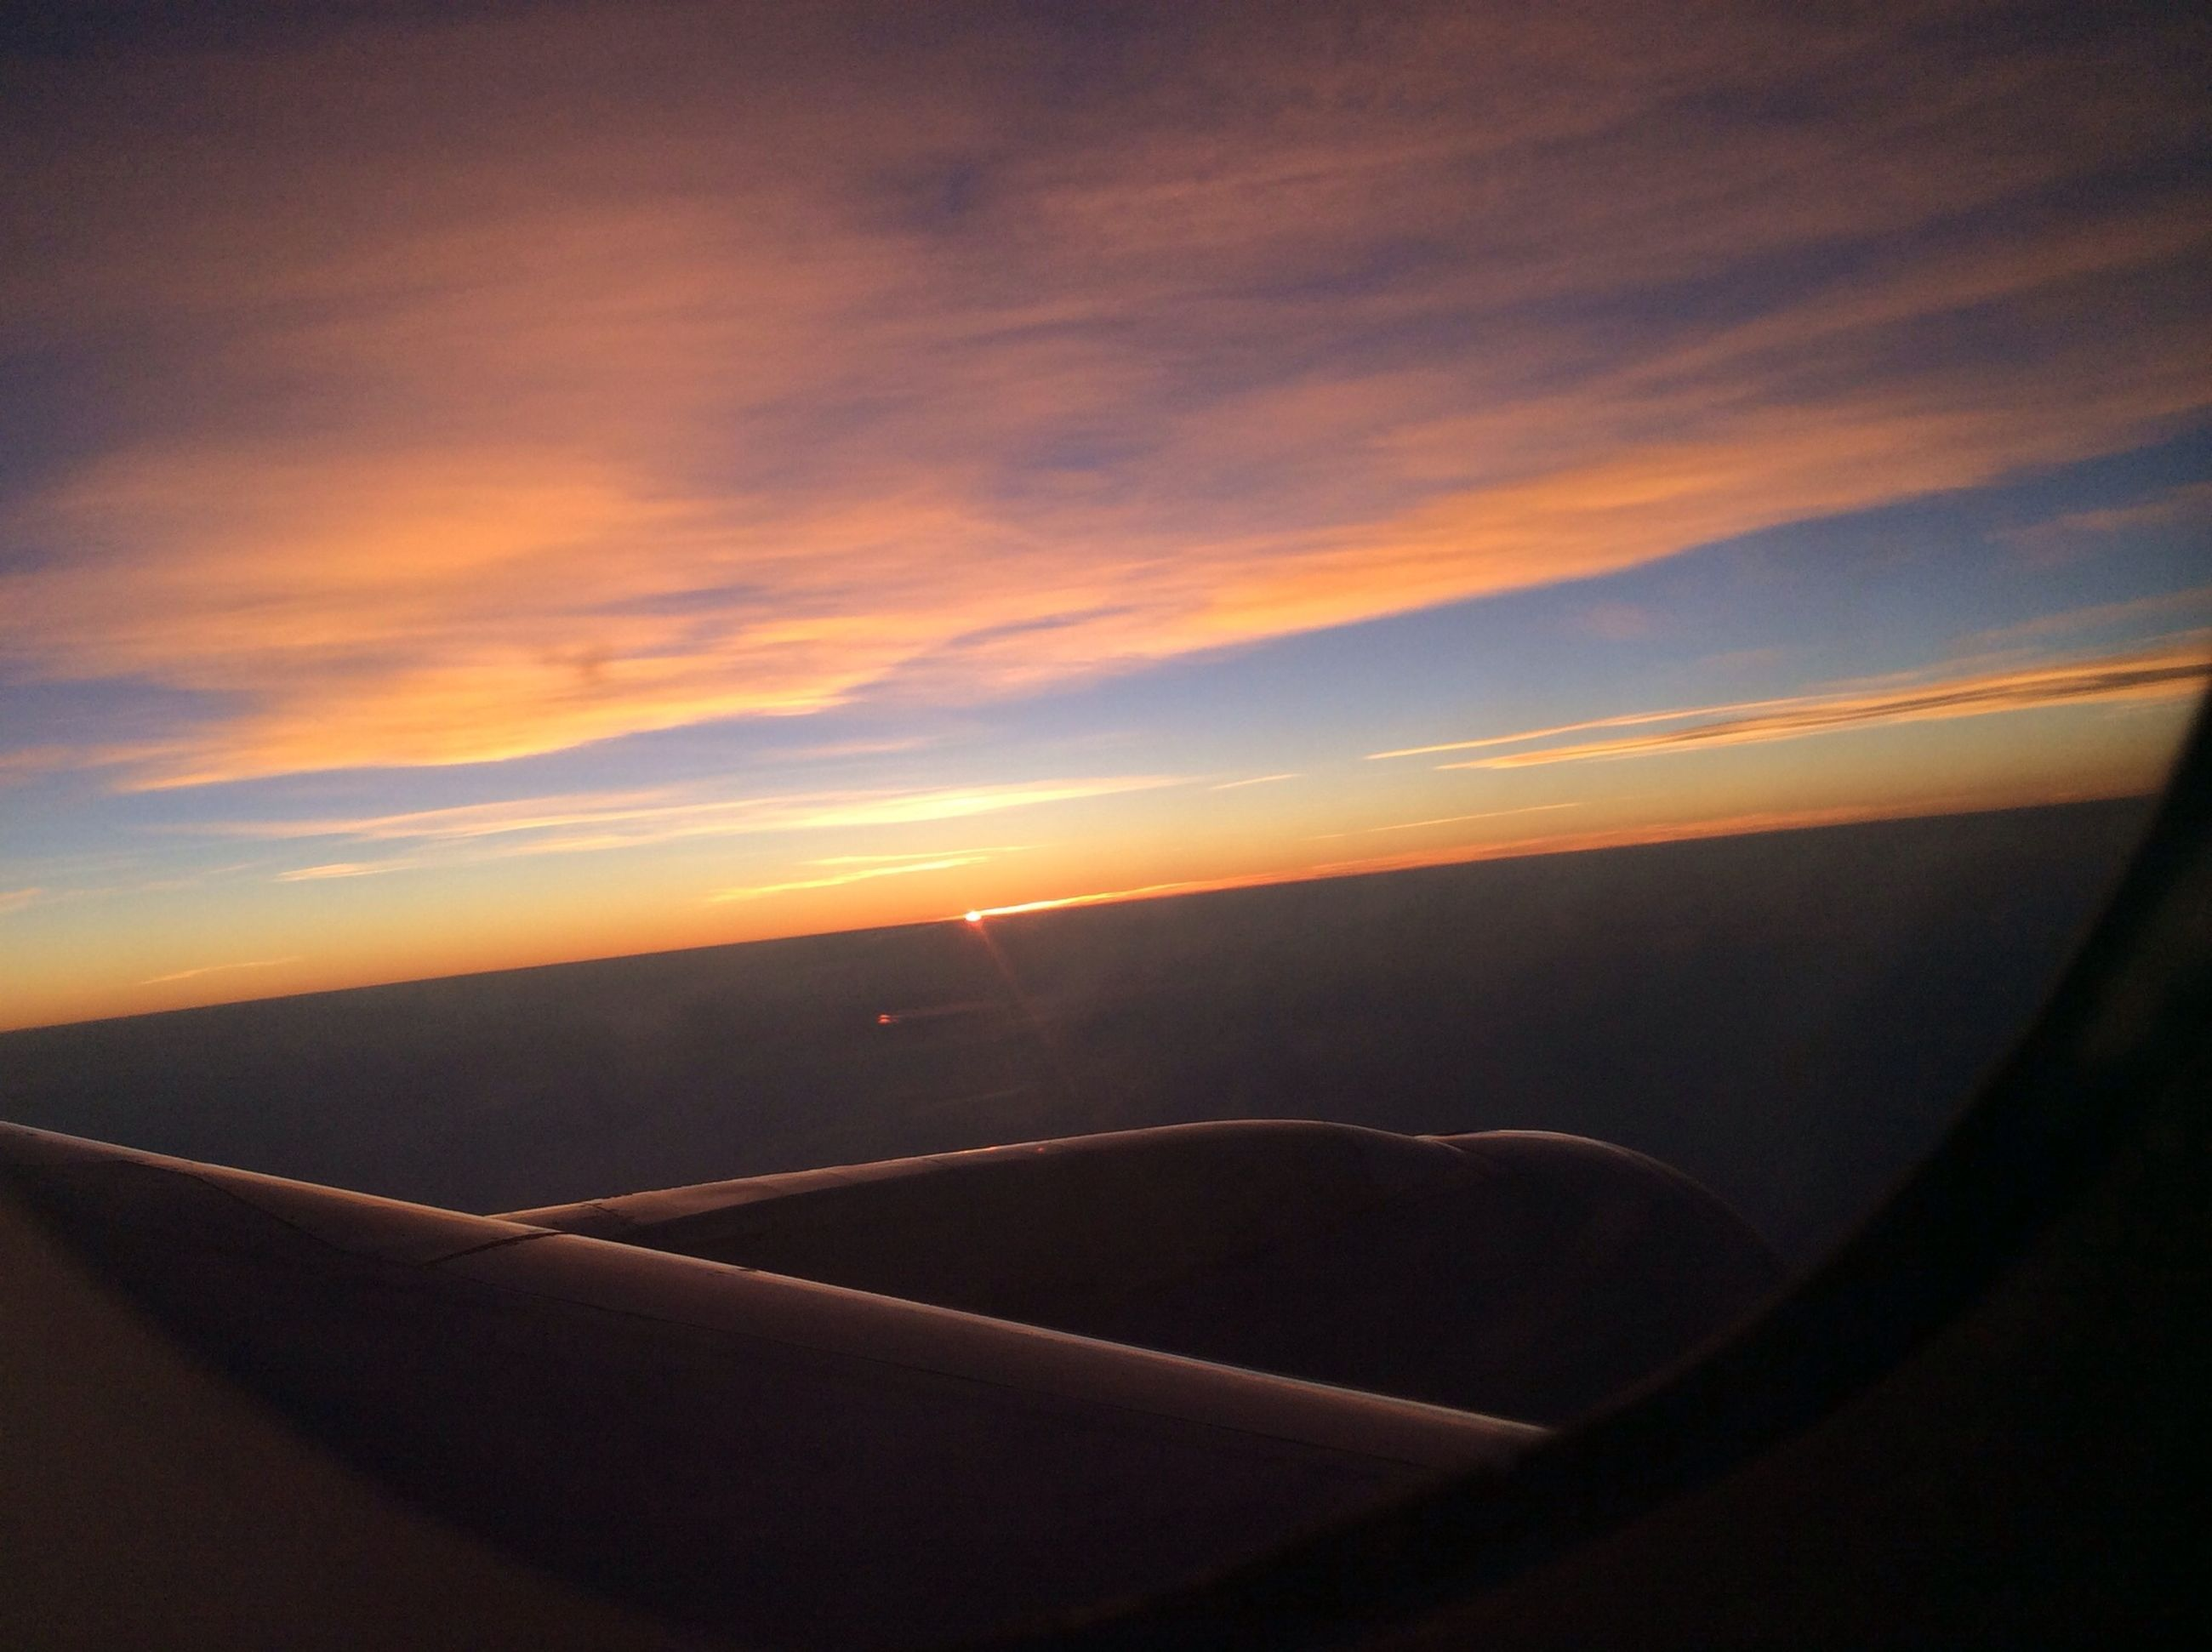 sunset, transportation, sky, scenics, landscape, beauty in nature, orange color, tranquil scene, tranquility, cloud - sky, nature, mode of transport, road, horizon over land, idyllic, airplane, cloud, travel, sun, no people